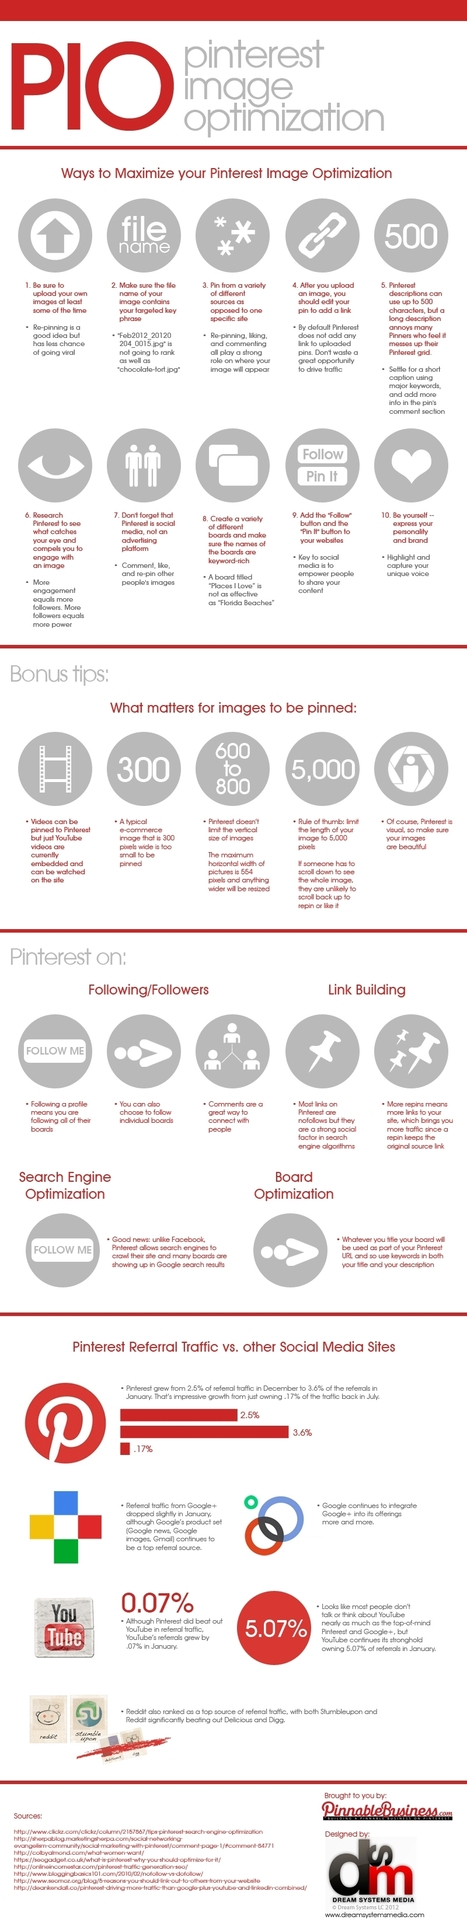 Pinterest Image Optimization [Infographic] | Technical & Social News | Scoop.it